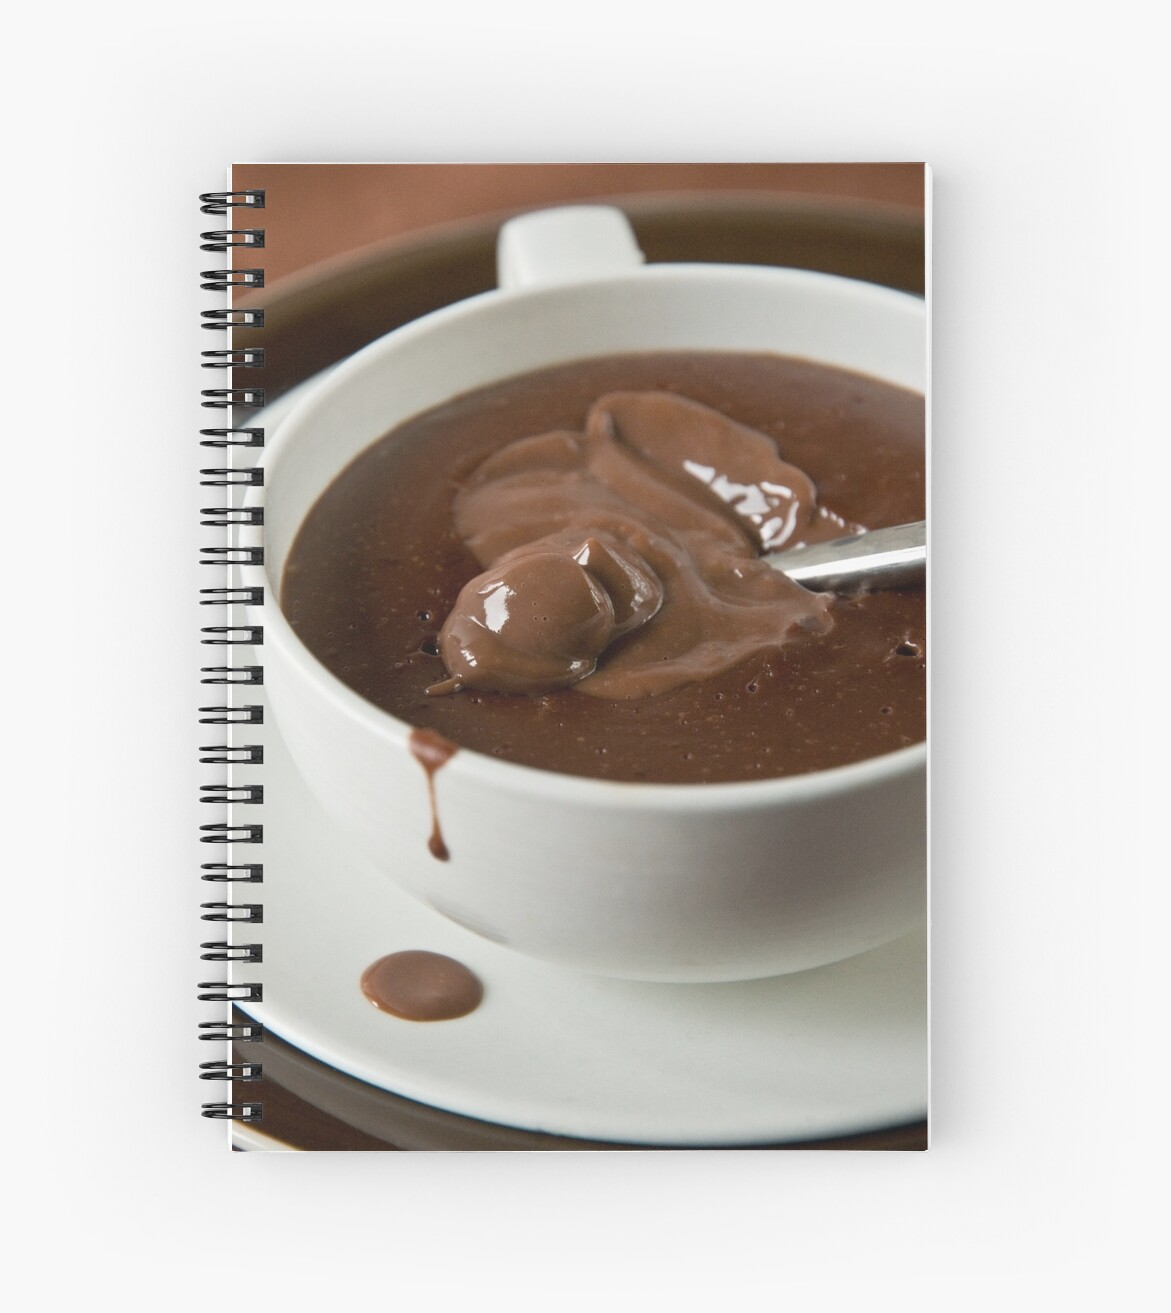 A cup of chocolate by Ilva Beretta